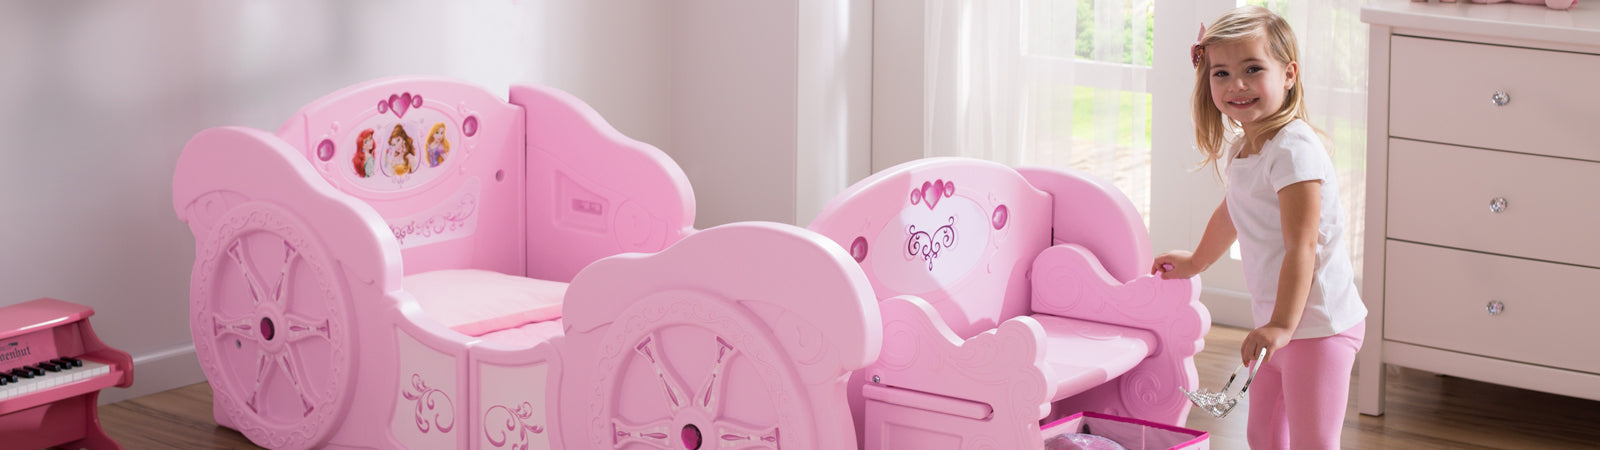 Princess Toddler-to-Twin Bed in a Room